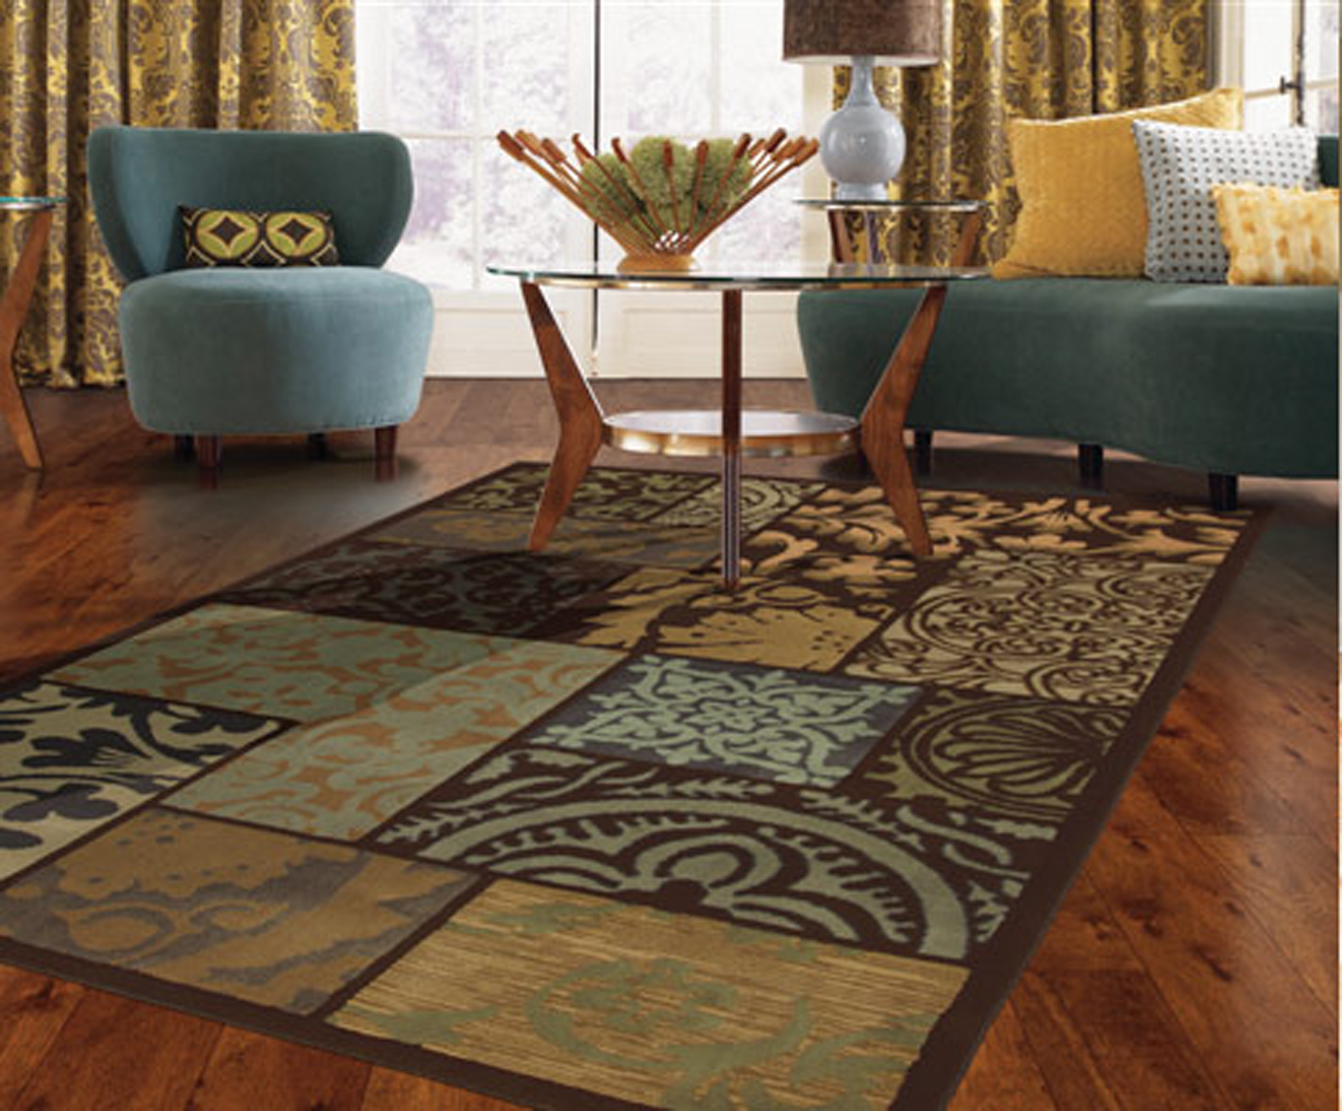 Arearugs Mid City Carpets amp Interiors Sudbury Ontario